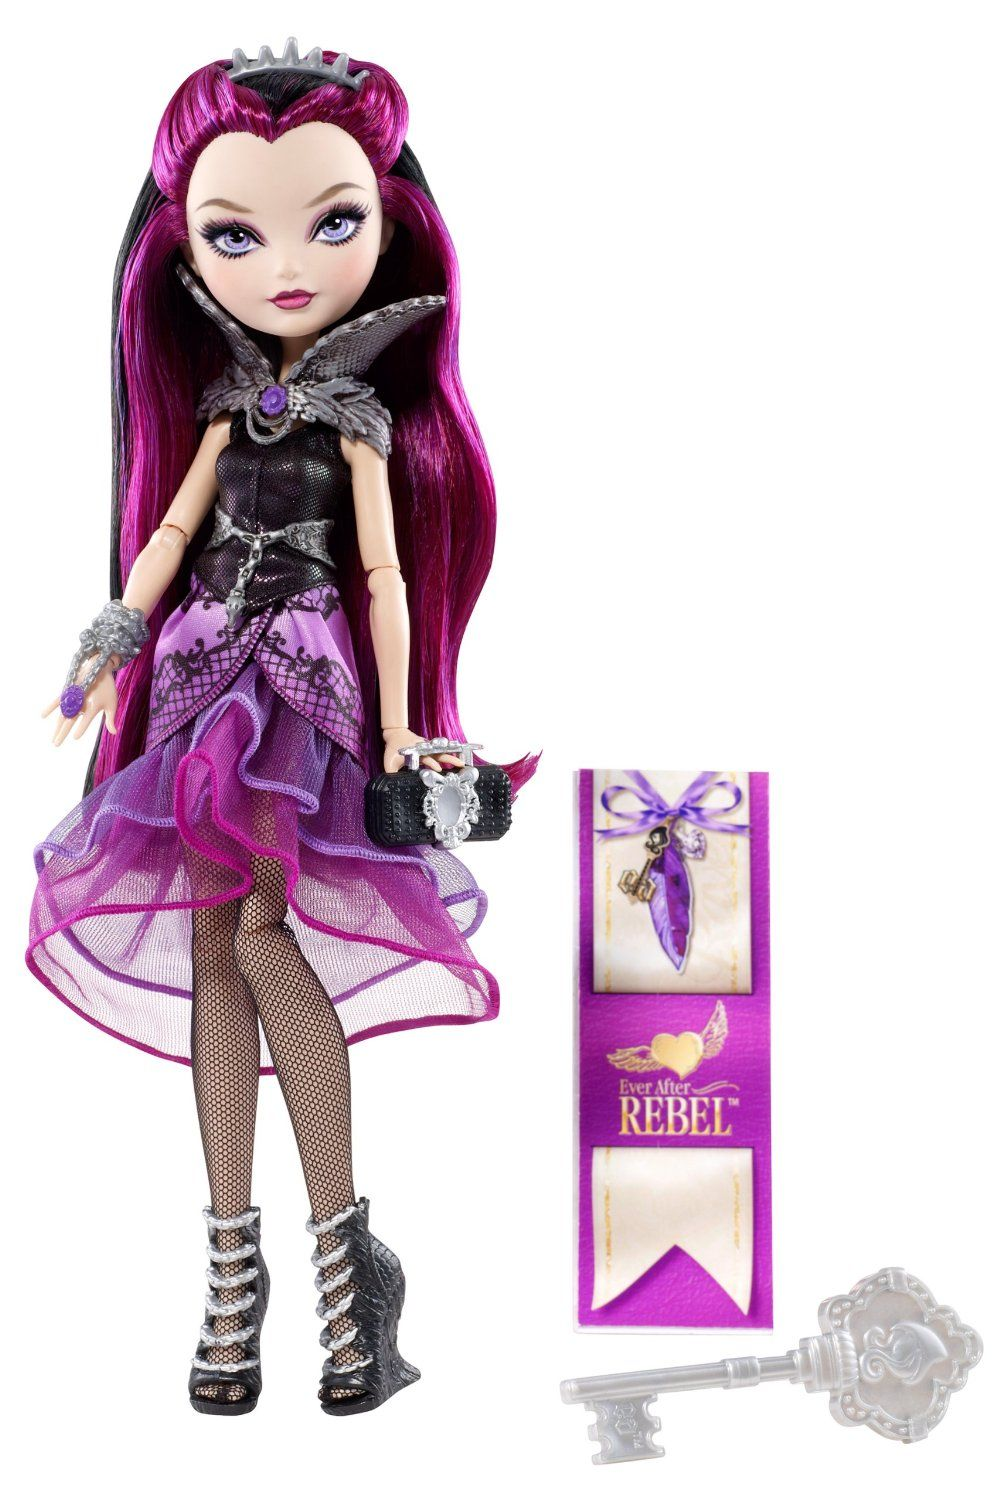 Ever After High Raven Queen Doll depicts the elegantly Gothic styled character of daughter of the hated Evil Queen. This awesome doll is gorgeously dressed in a purple and black color themed Goth outfit that suits her character perfectly!